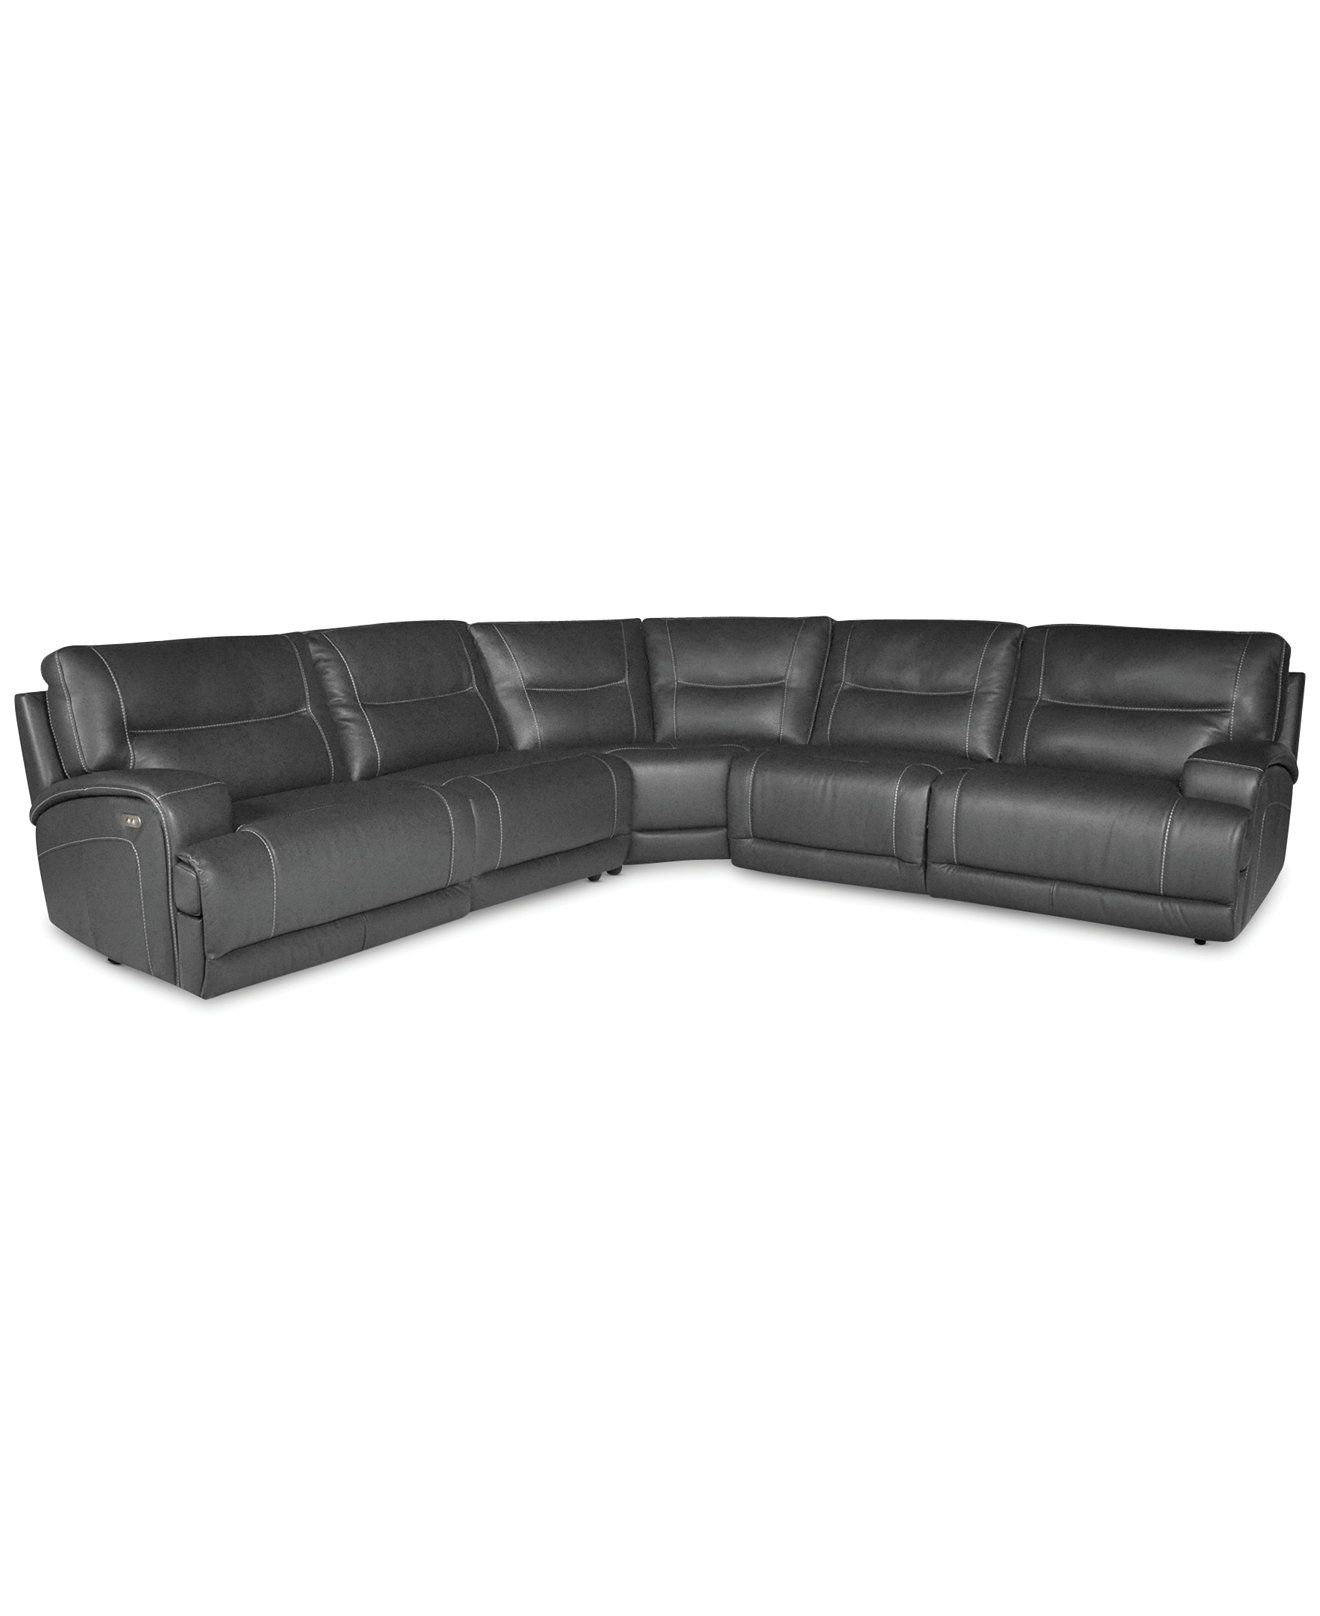 121x121 Caruso Leather 5 Piece Power Motion Sectional Sofa